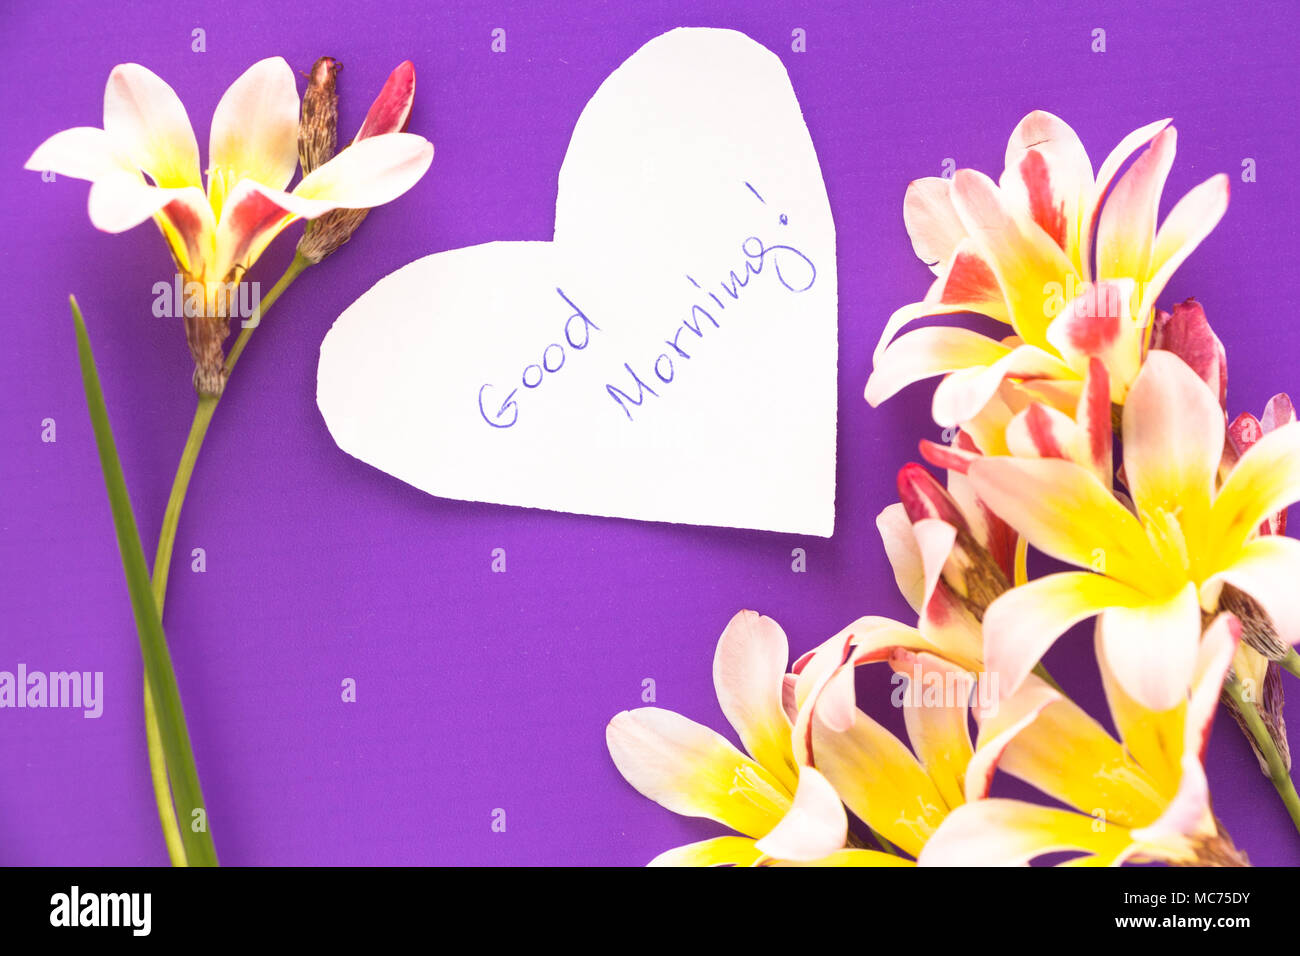 Note in shape of heart with words 'Good Morning!' with flowers on purple surface. - Stock Image